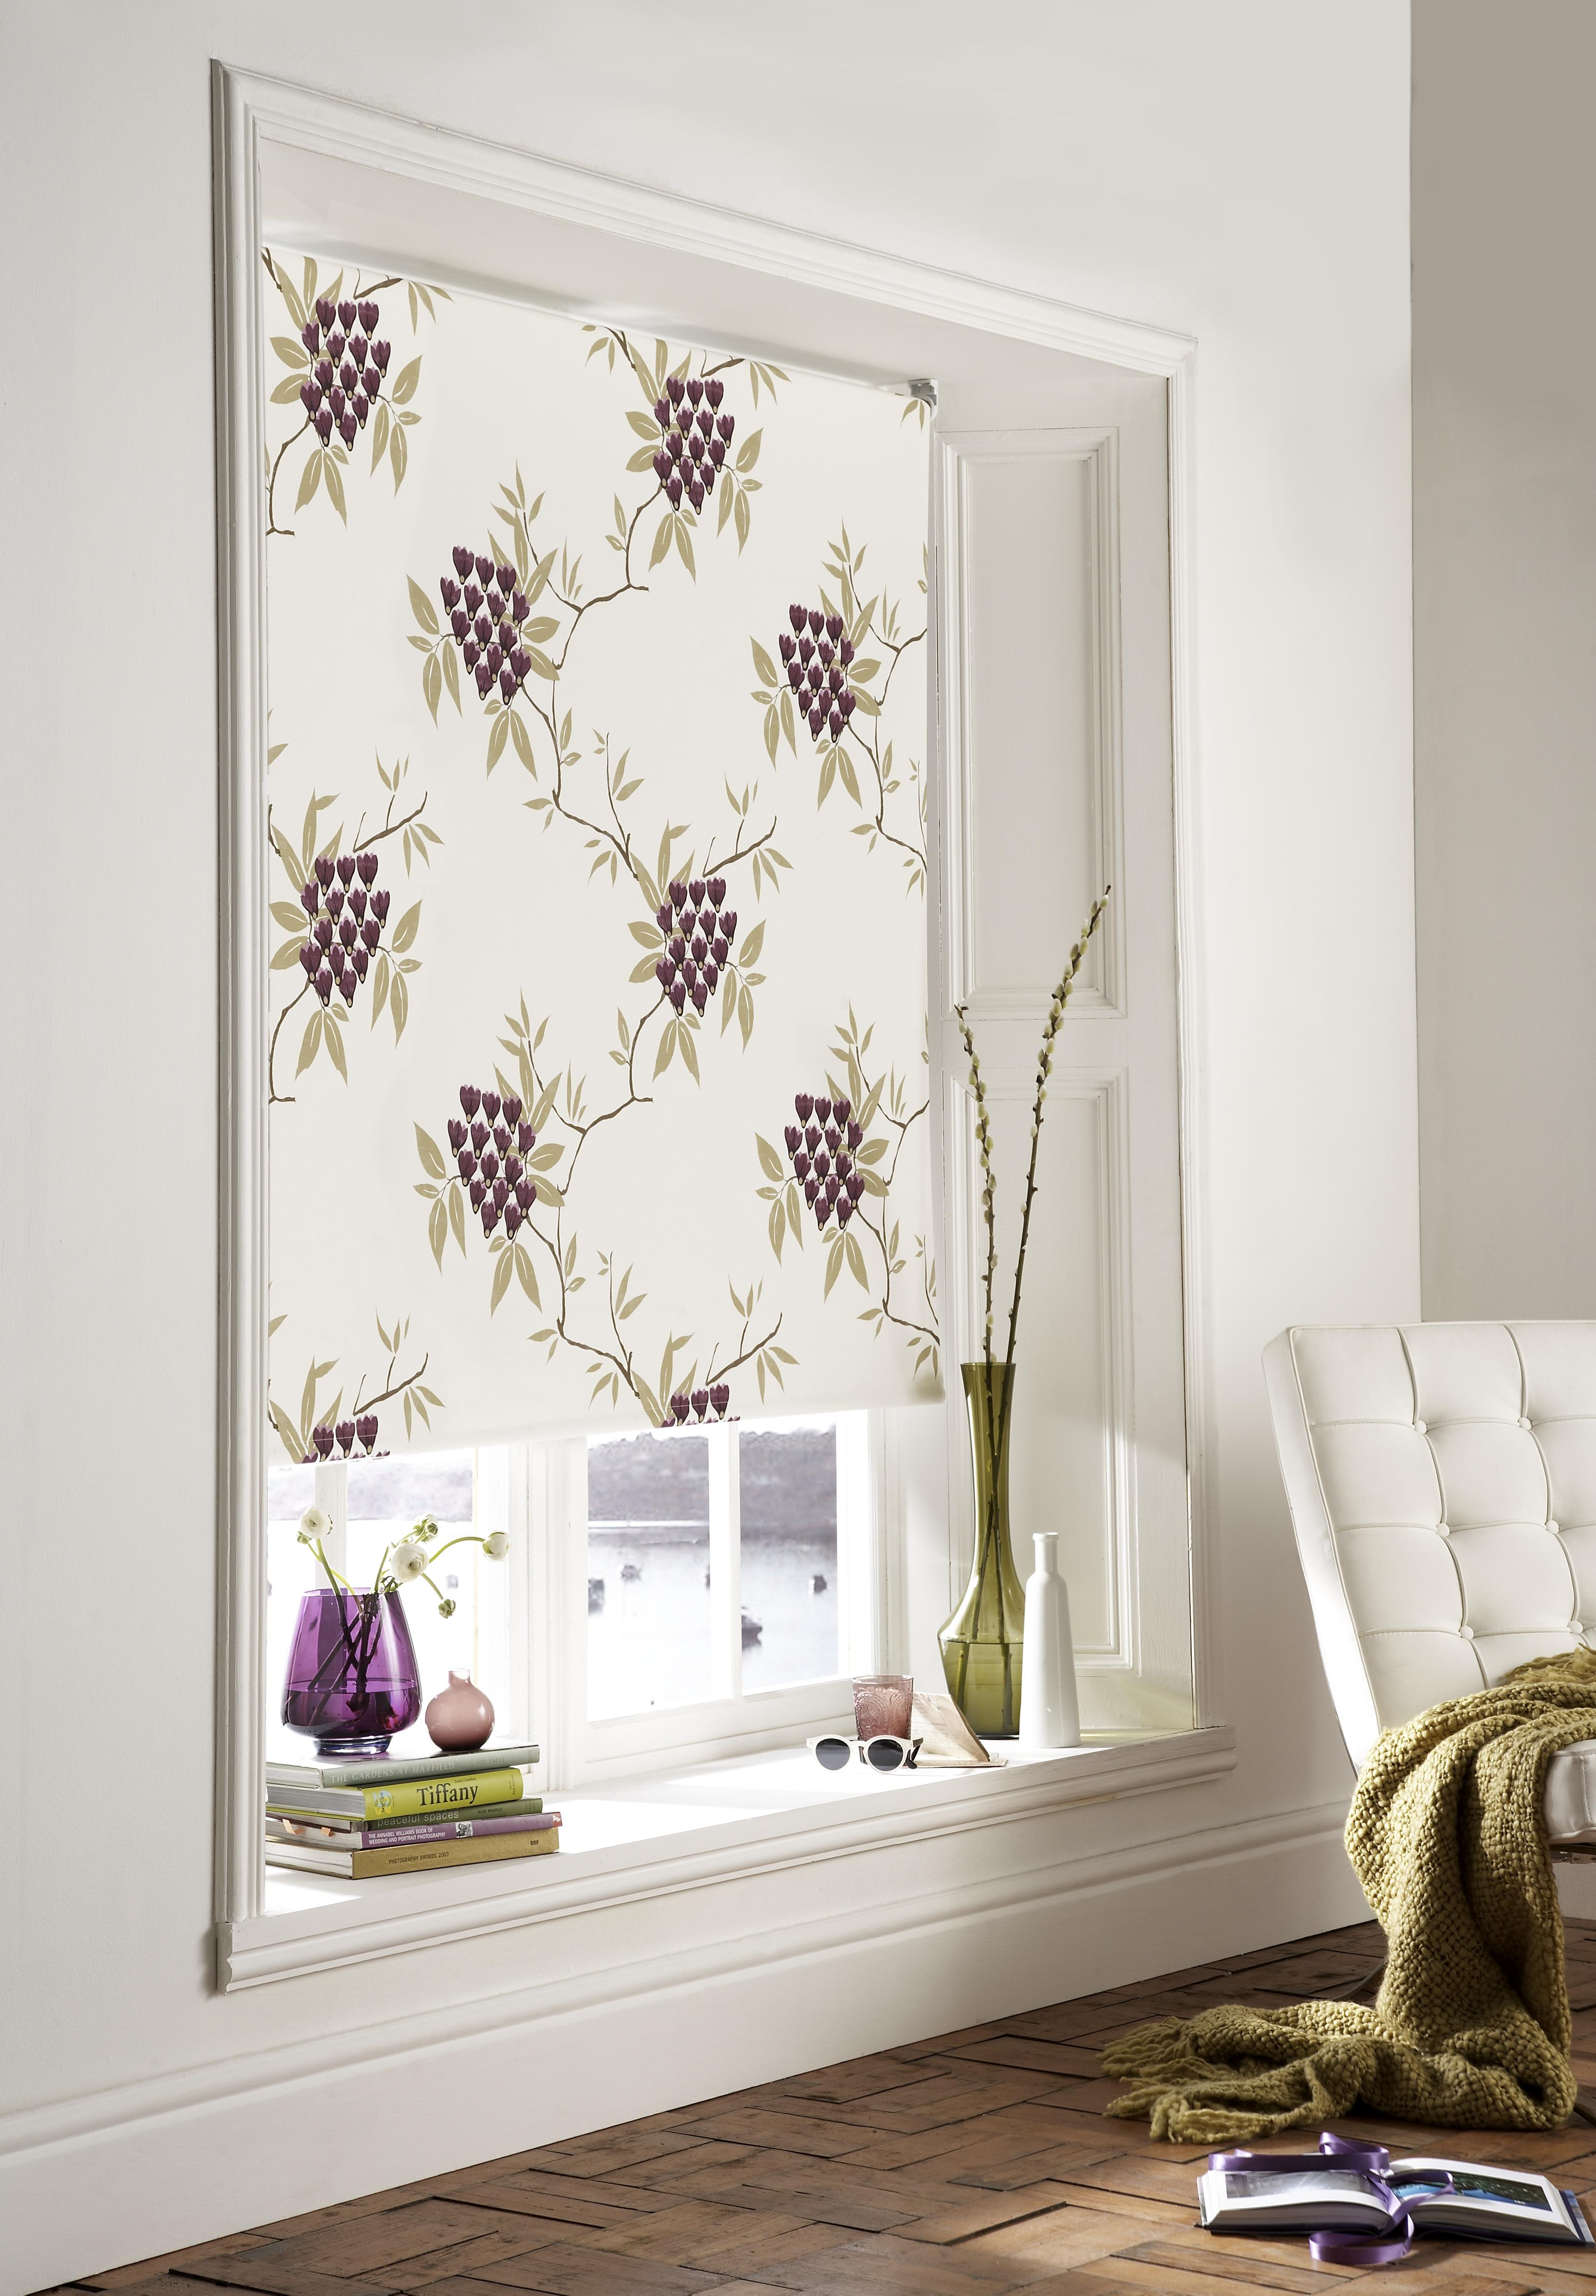 Blackout Blinds The Unsung Heroes Of Interior Design